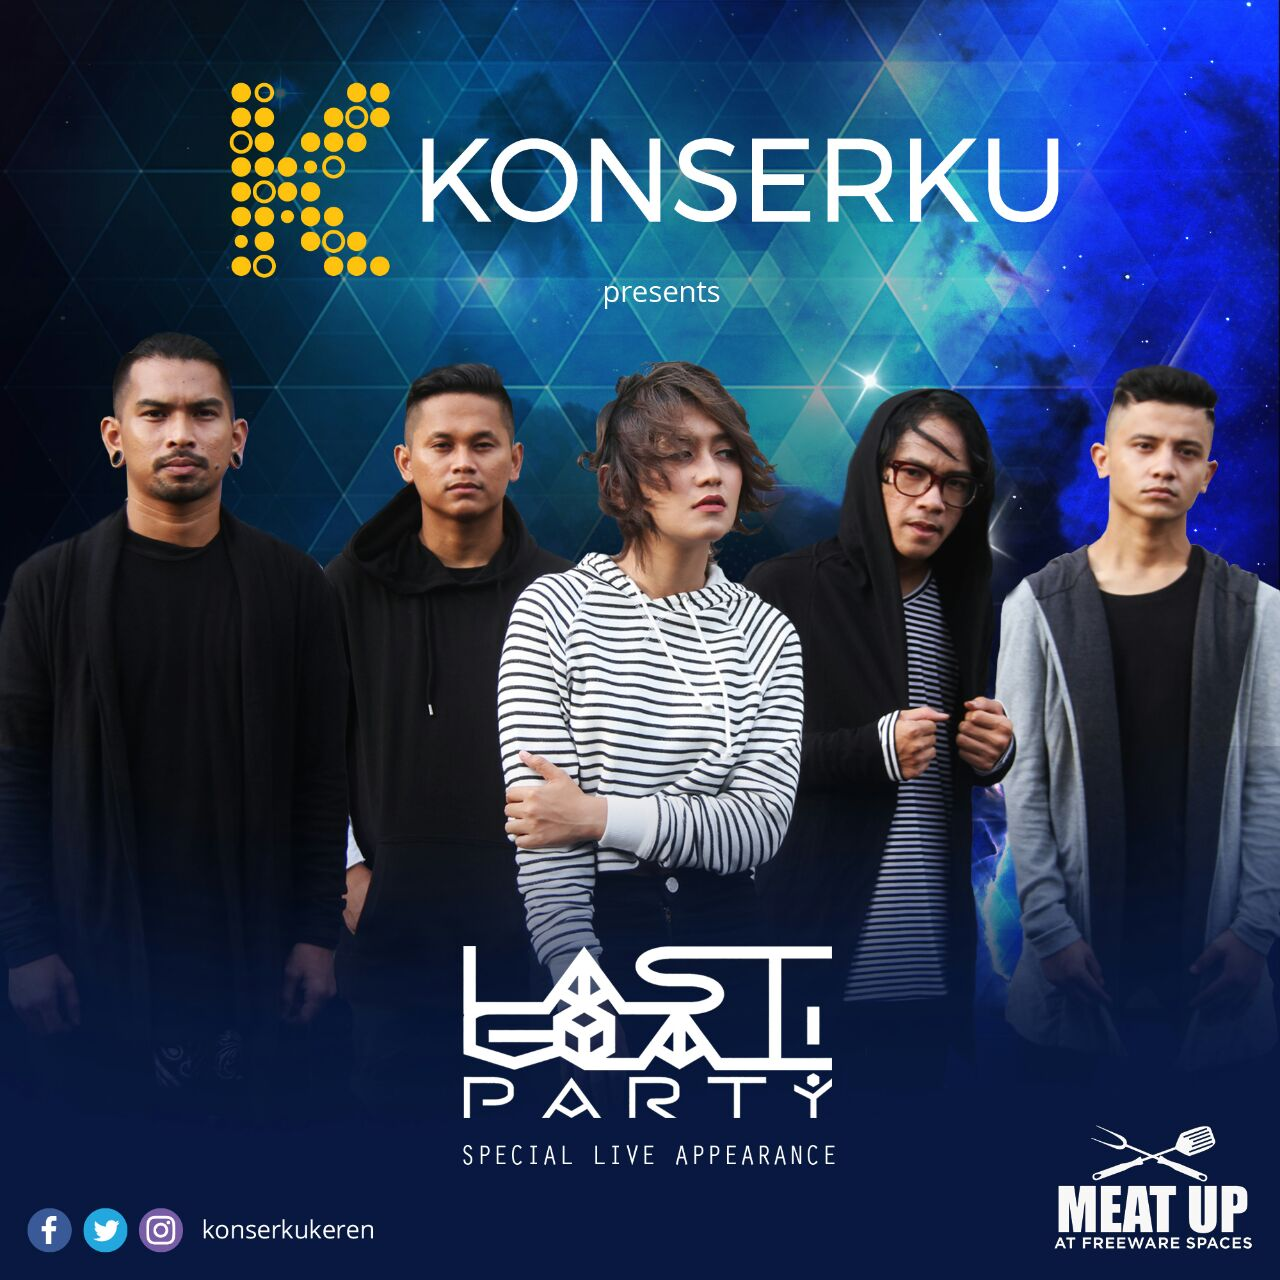 What's a party without awesome music?   @konserkukeren got you covered with a special live music performance by Last Goal Party! at the upcoming Meat Up event. Come and groove to their music!